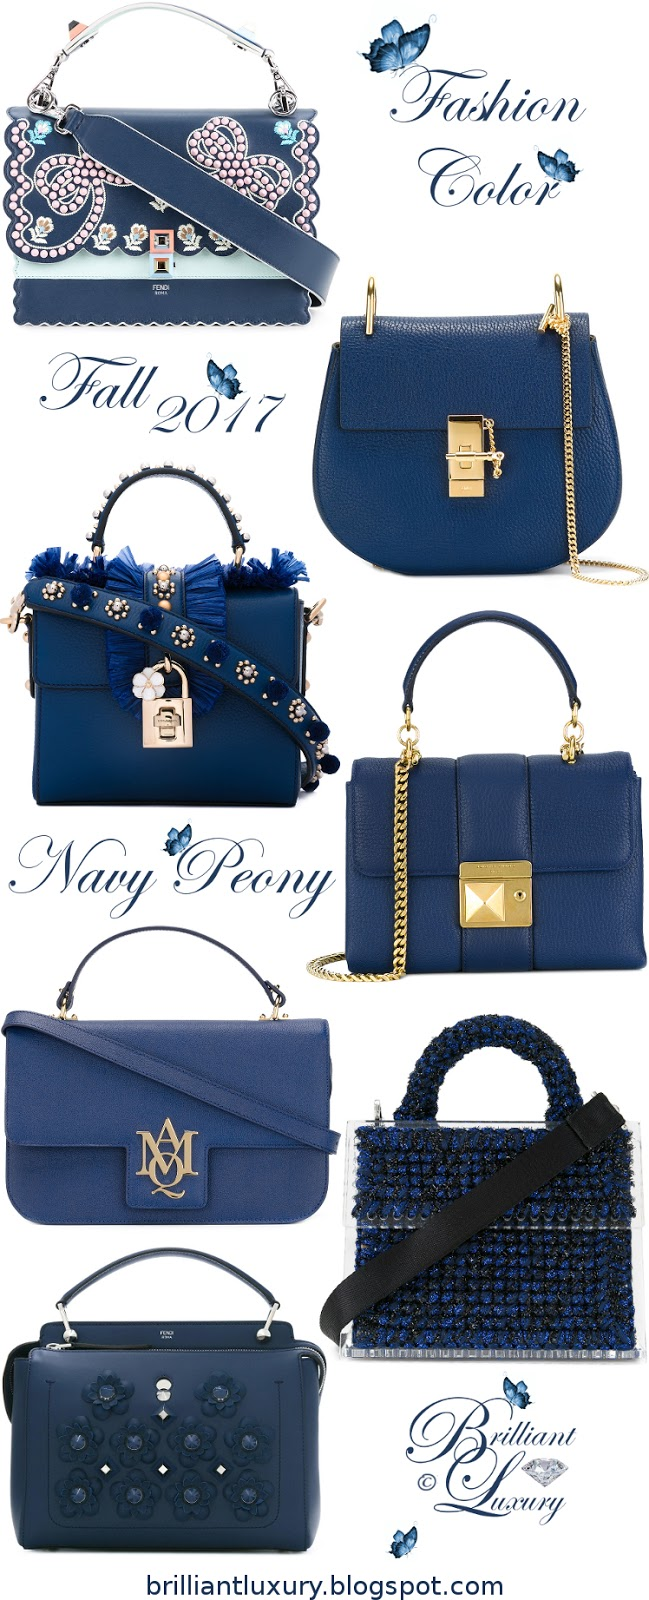 Brilliant Luxury ♦ Fashion Color Fall 2017 ~ navy peony #bags